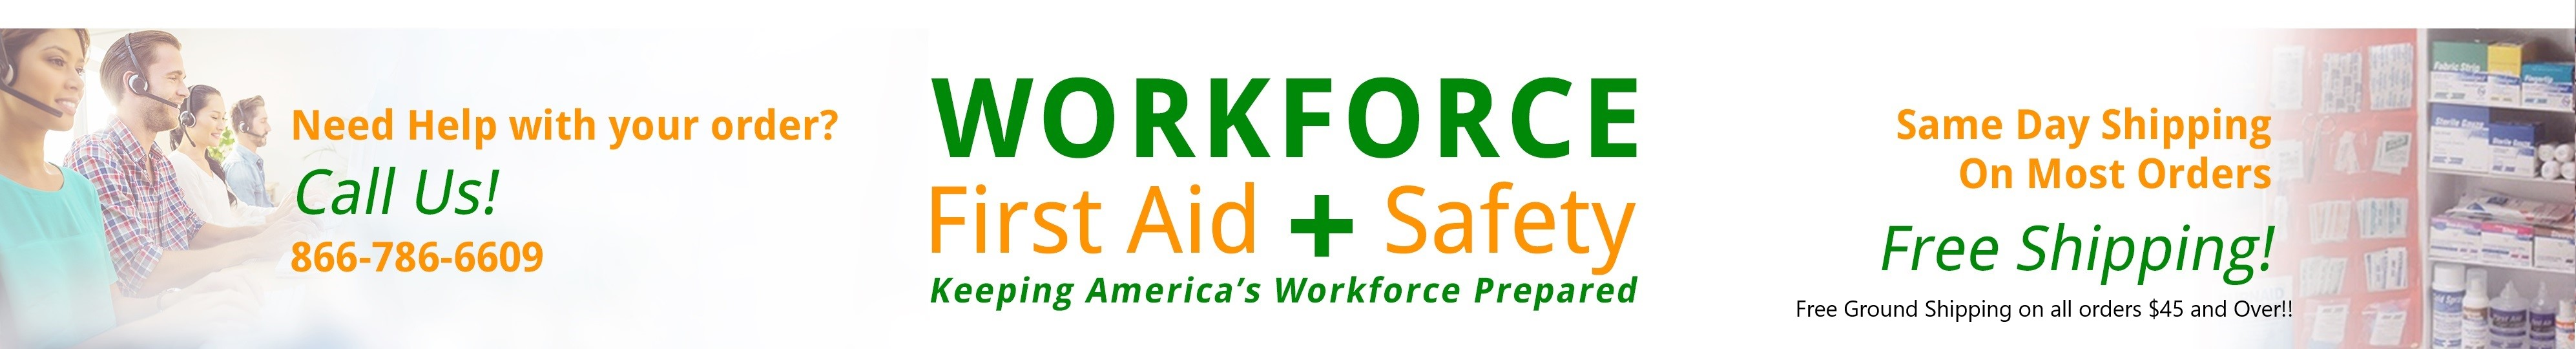 Workforce First Aid & Safety